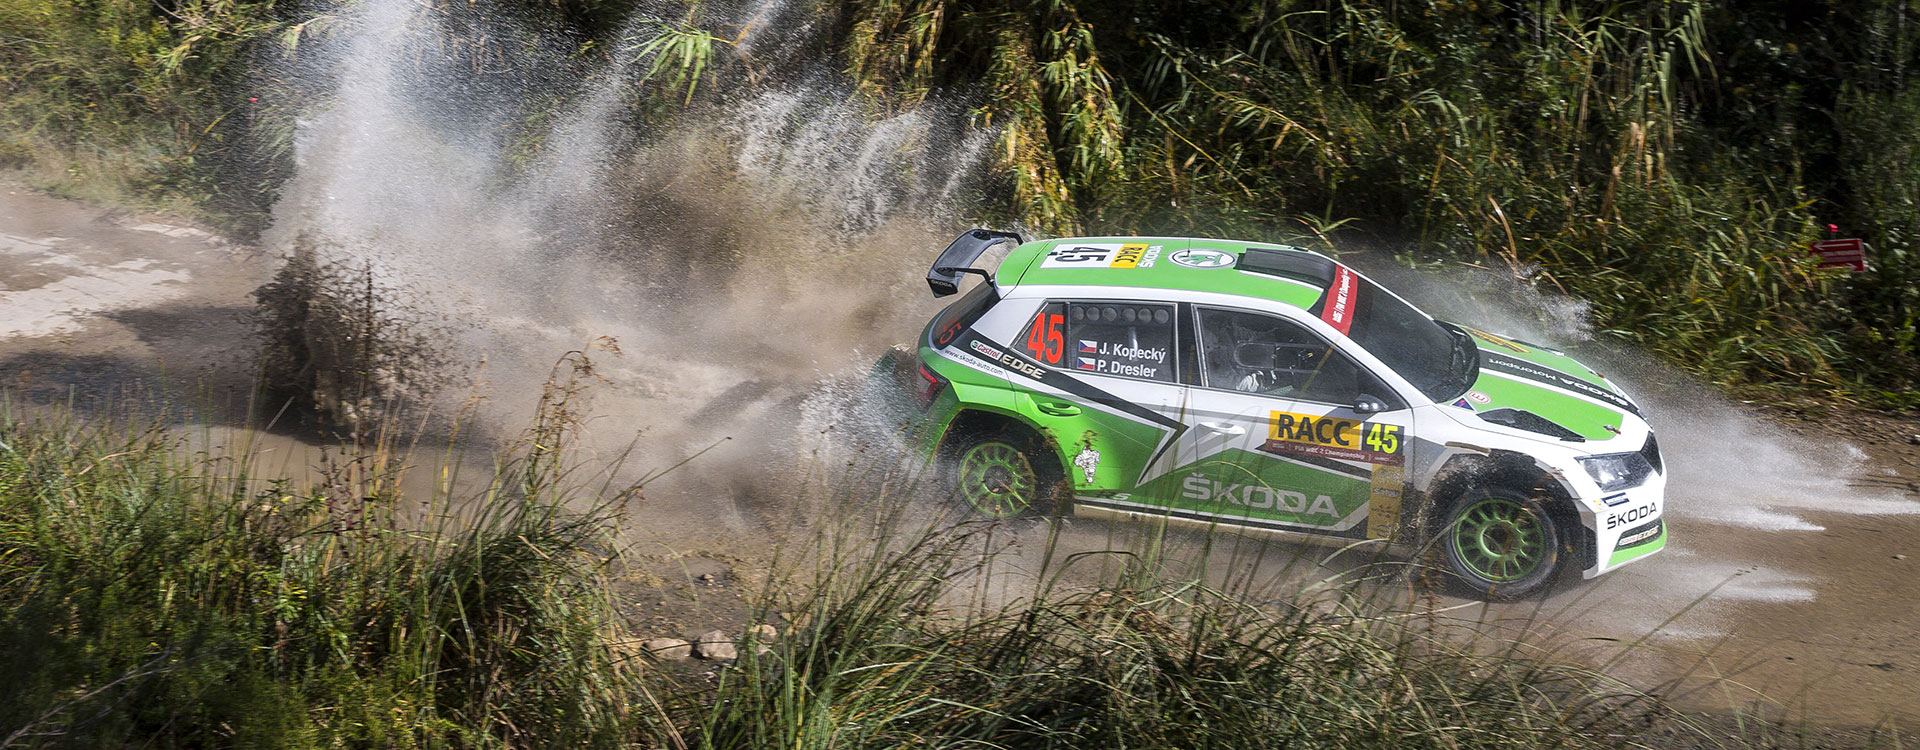 WRC Spain: Unique challenge of only mixed surface event of the season